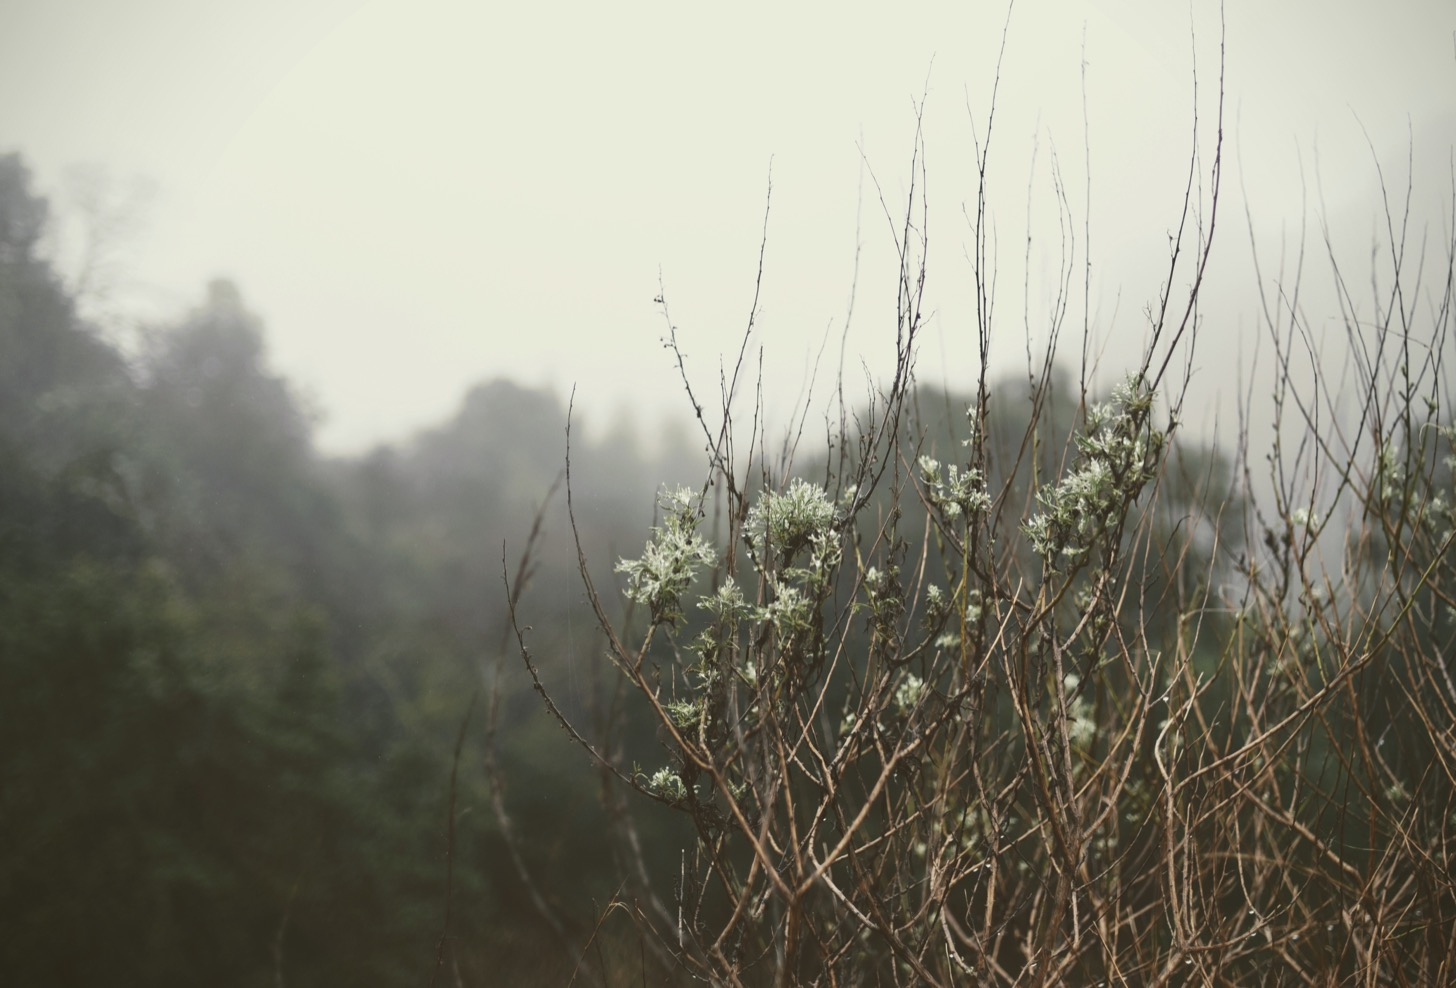 Tree branches and flowers in the fog.